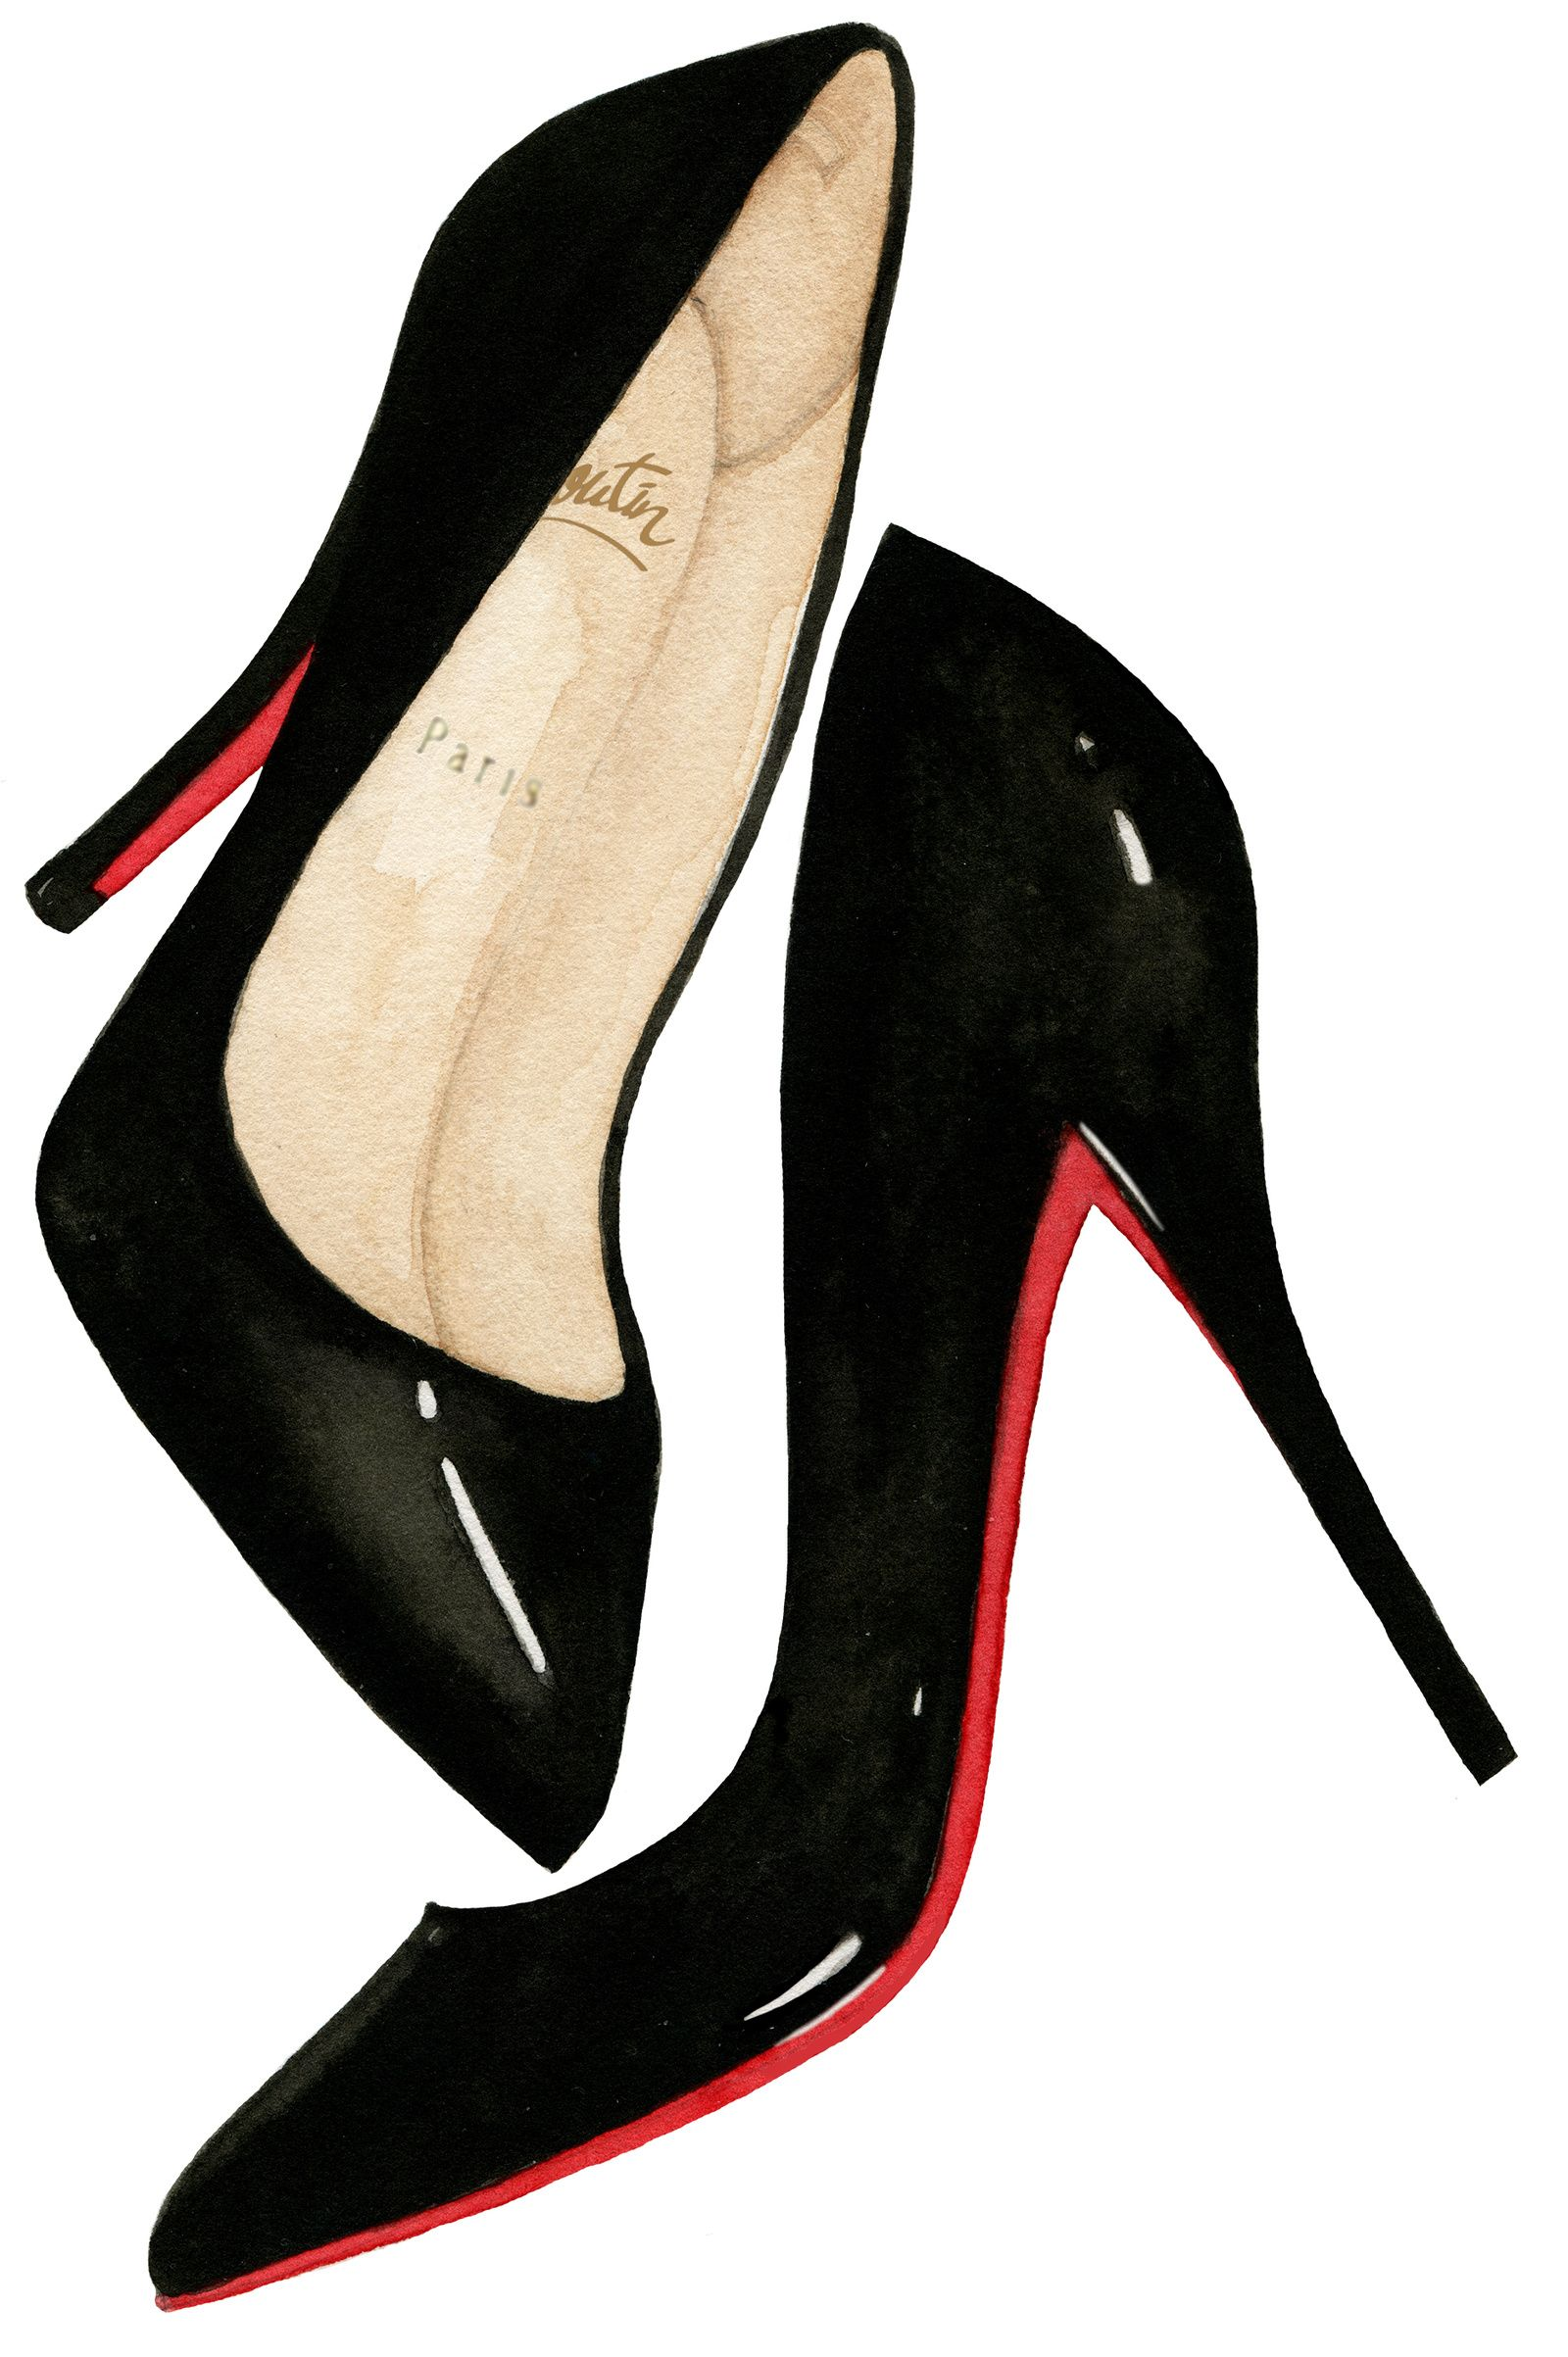 3adaf02b56b2 Hand painted watercolor illustration of shiny black patent leather Christian  Louboutin high heel pump shoes by Dena Cooper.